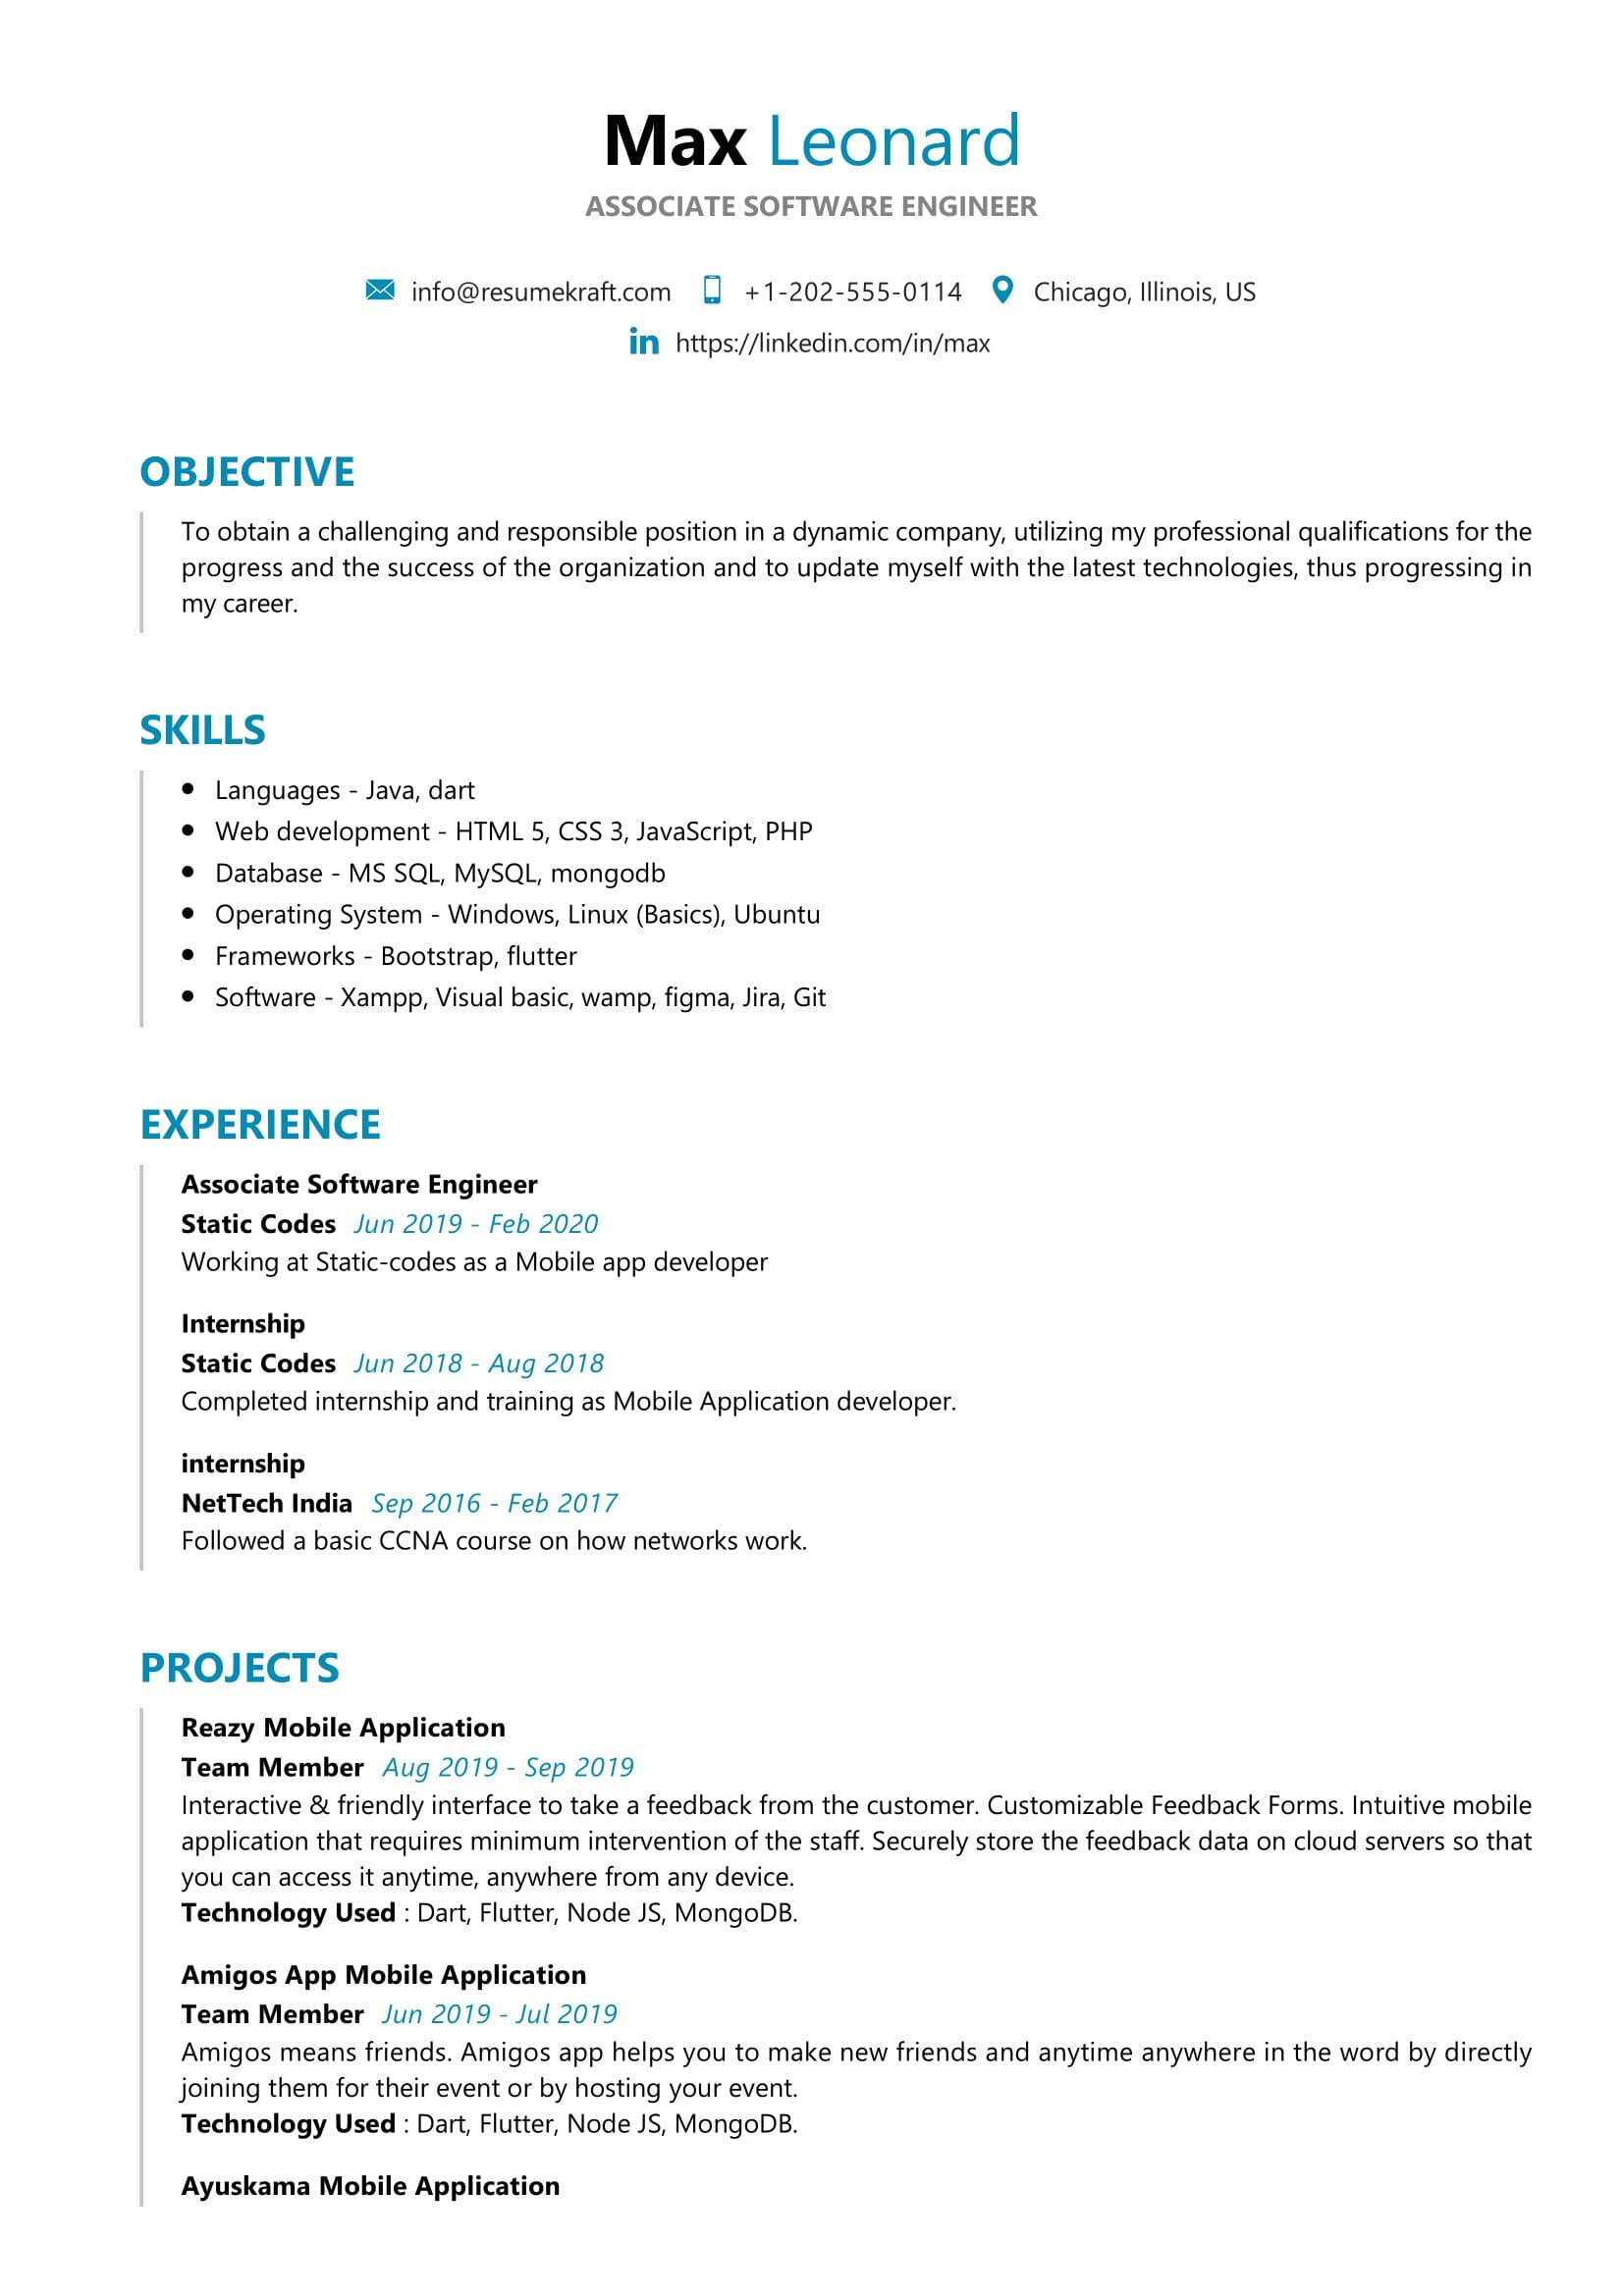 Associate Software Engineer Resume Sample Resumekraft